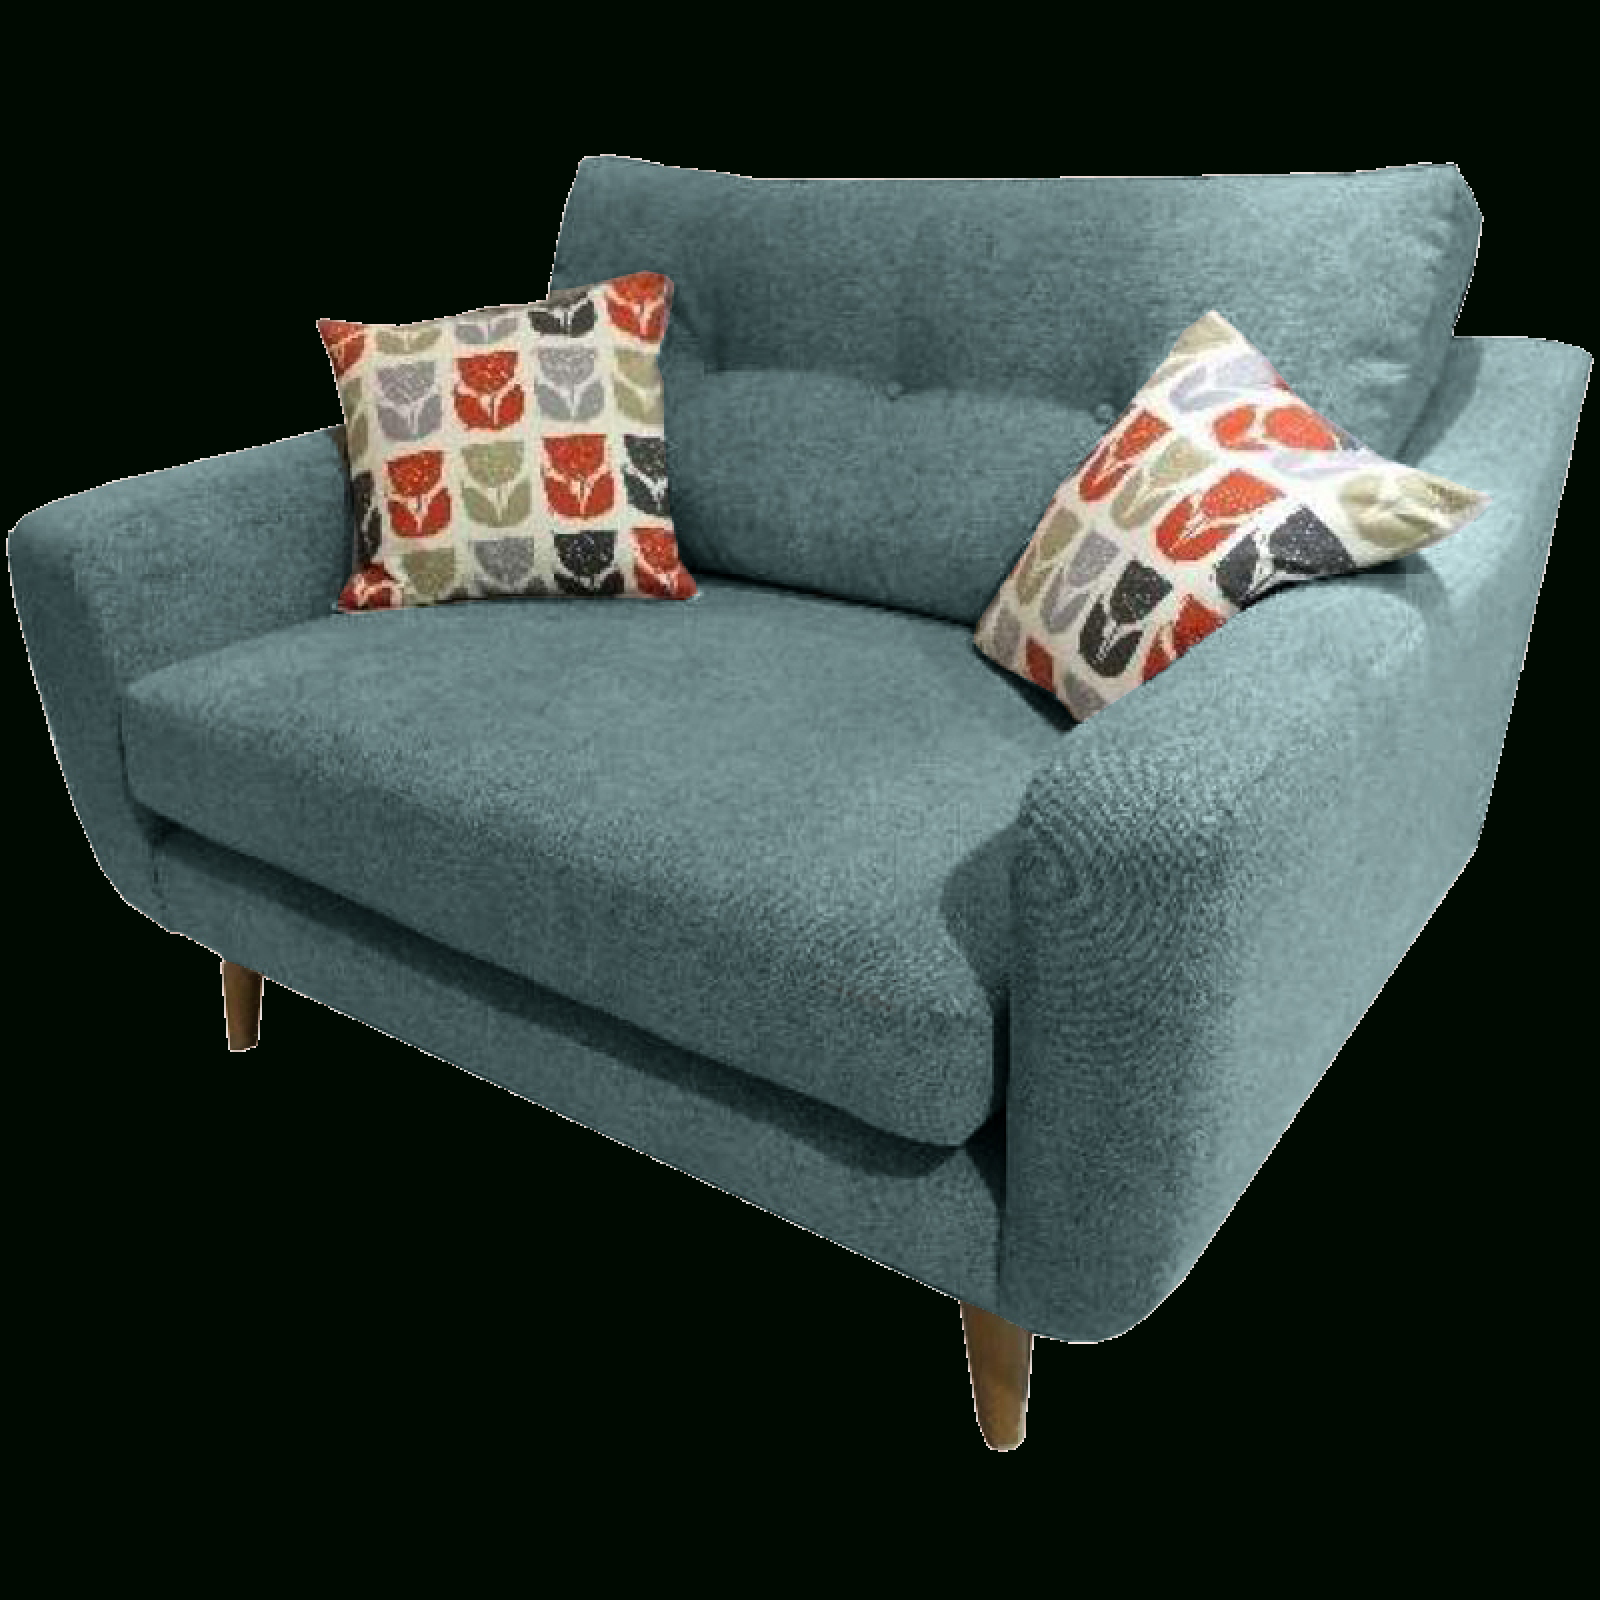 Lisbon Snuggler Sofa Chairwhitemeadow With 4Pc French Seamed Sectional Sofas Oblong Mustard (View 5 of 15)